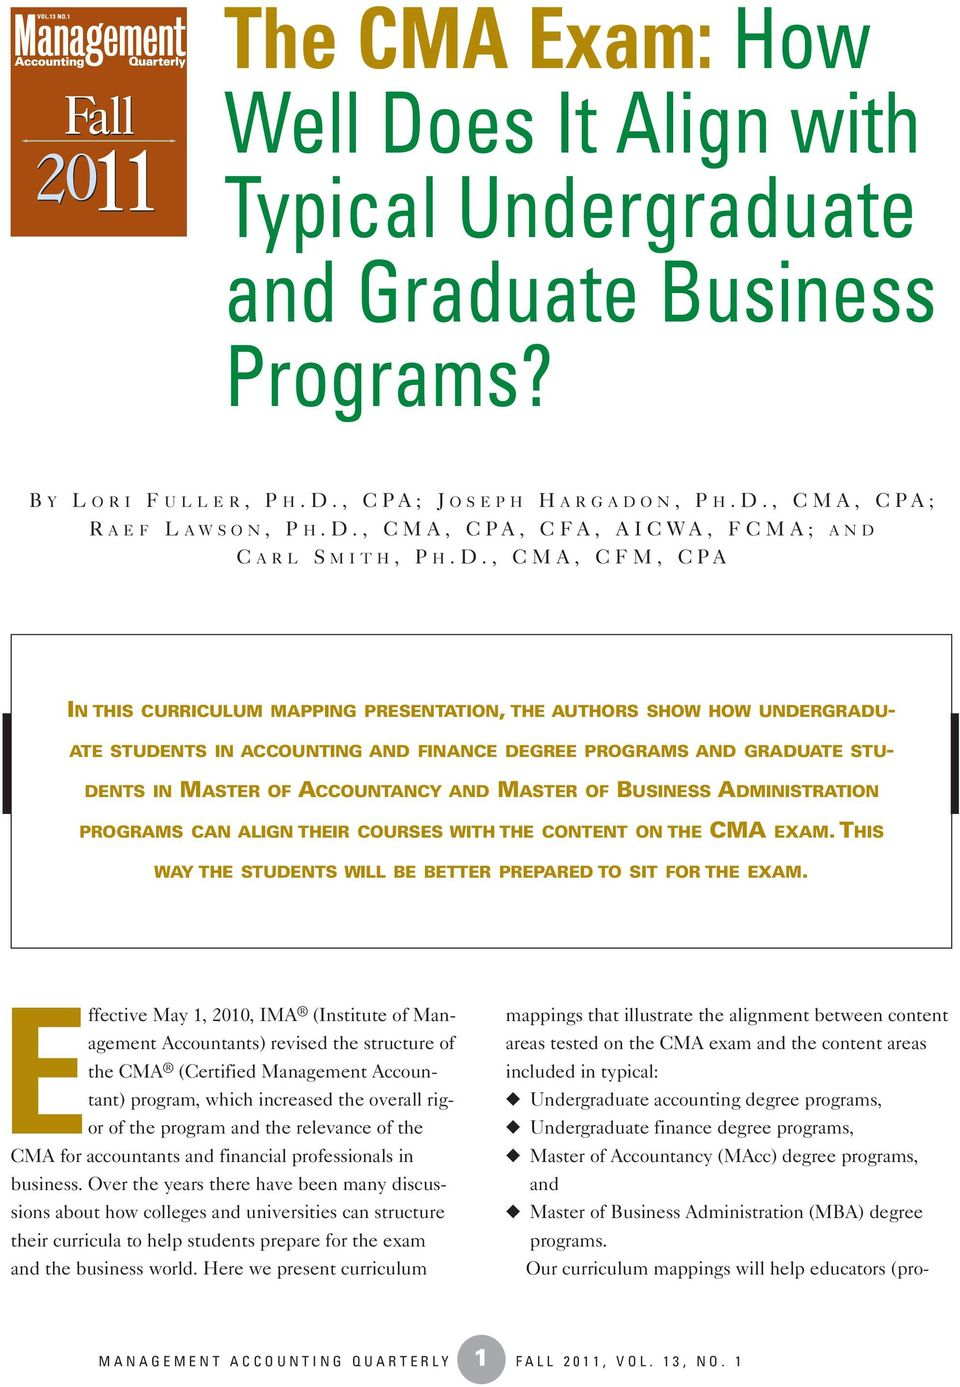 MASTER OF BUSINESS ADMINISTRATION PROGRAMS CAN ALIGN THEIR COURSES WITH THE CONTENT ON THE CMA EXAM. THIS WAY THE STUDENTS WILL BE BETTER PREPARED TO SIT FOR THE EXAM.